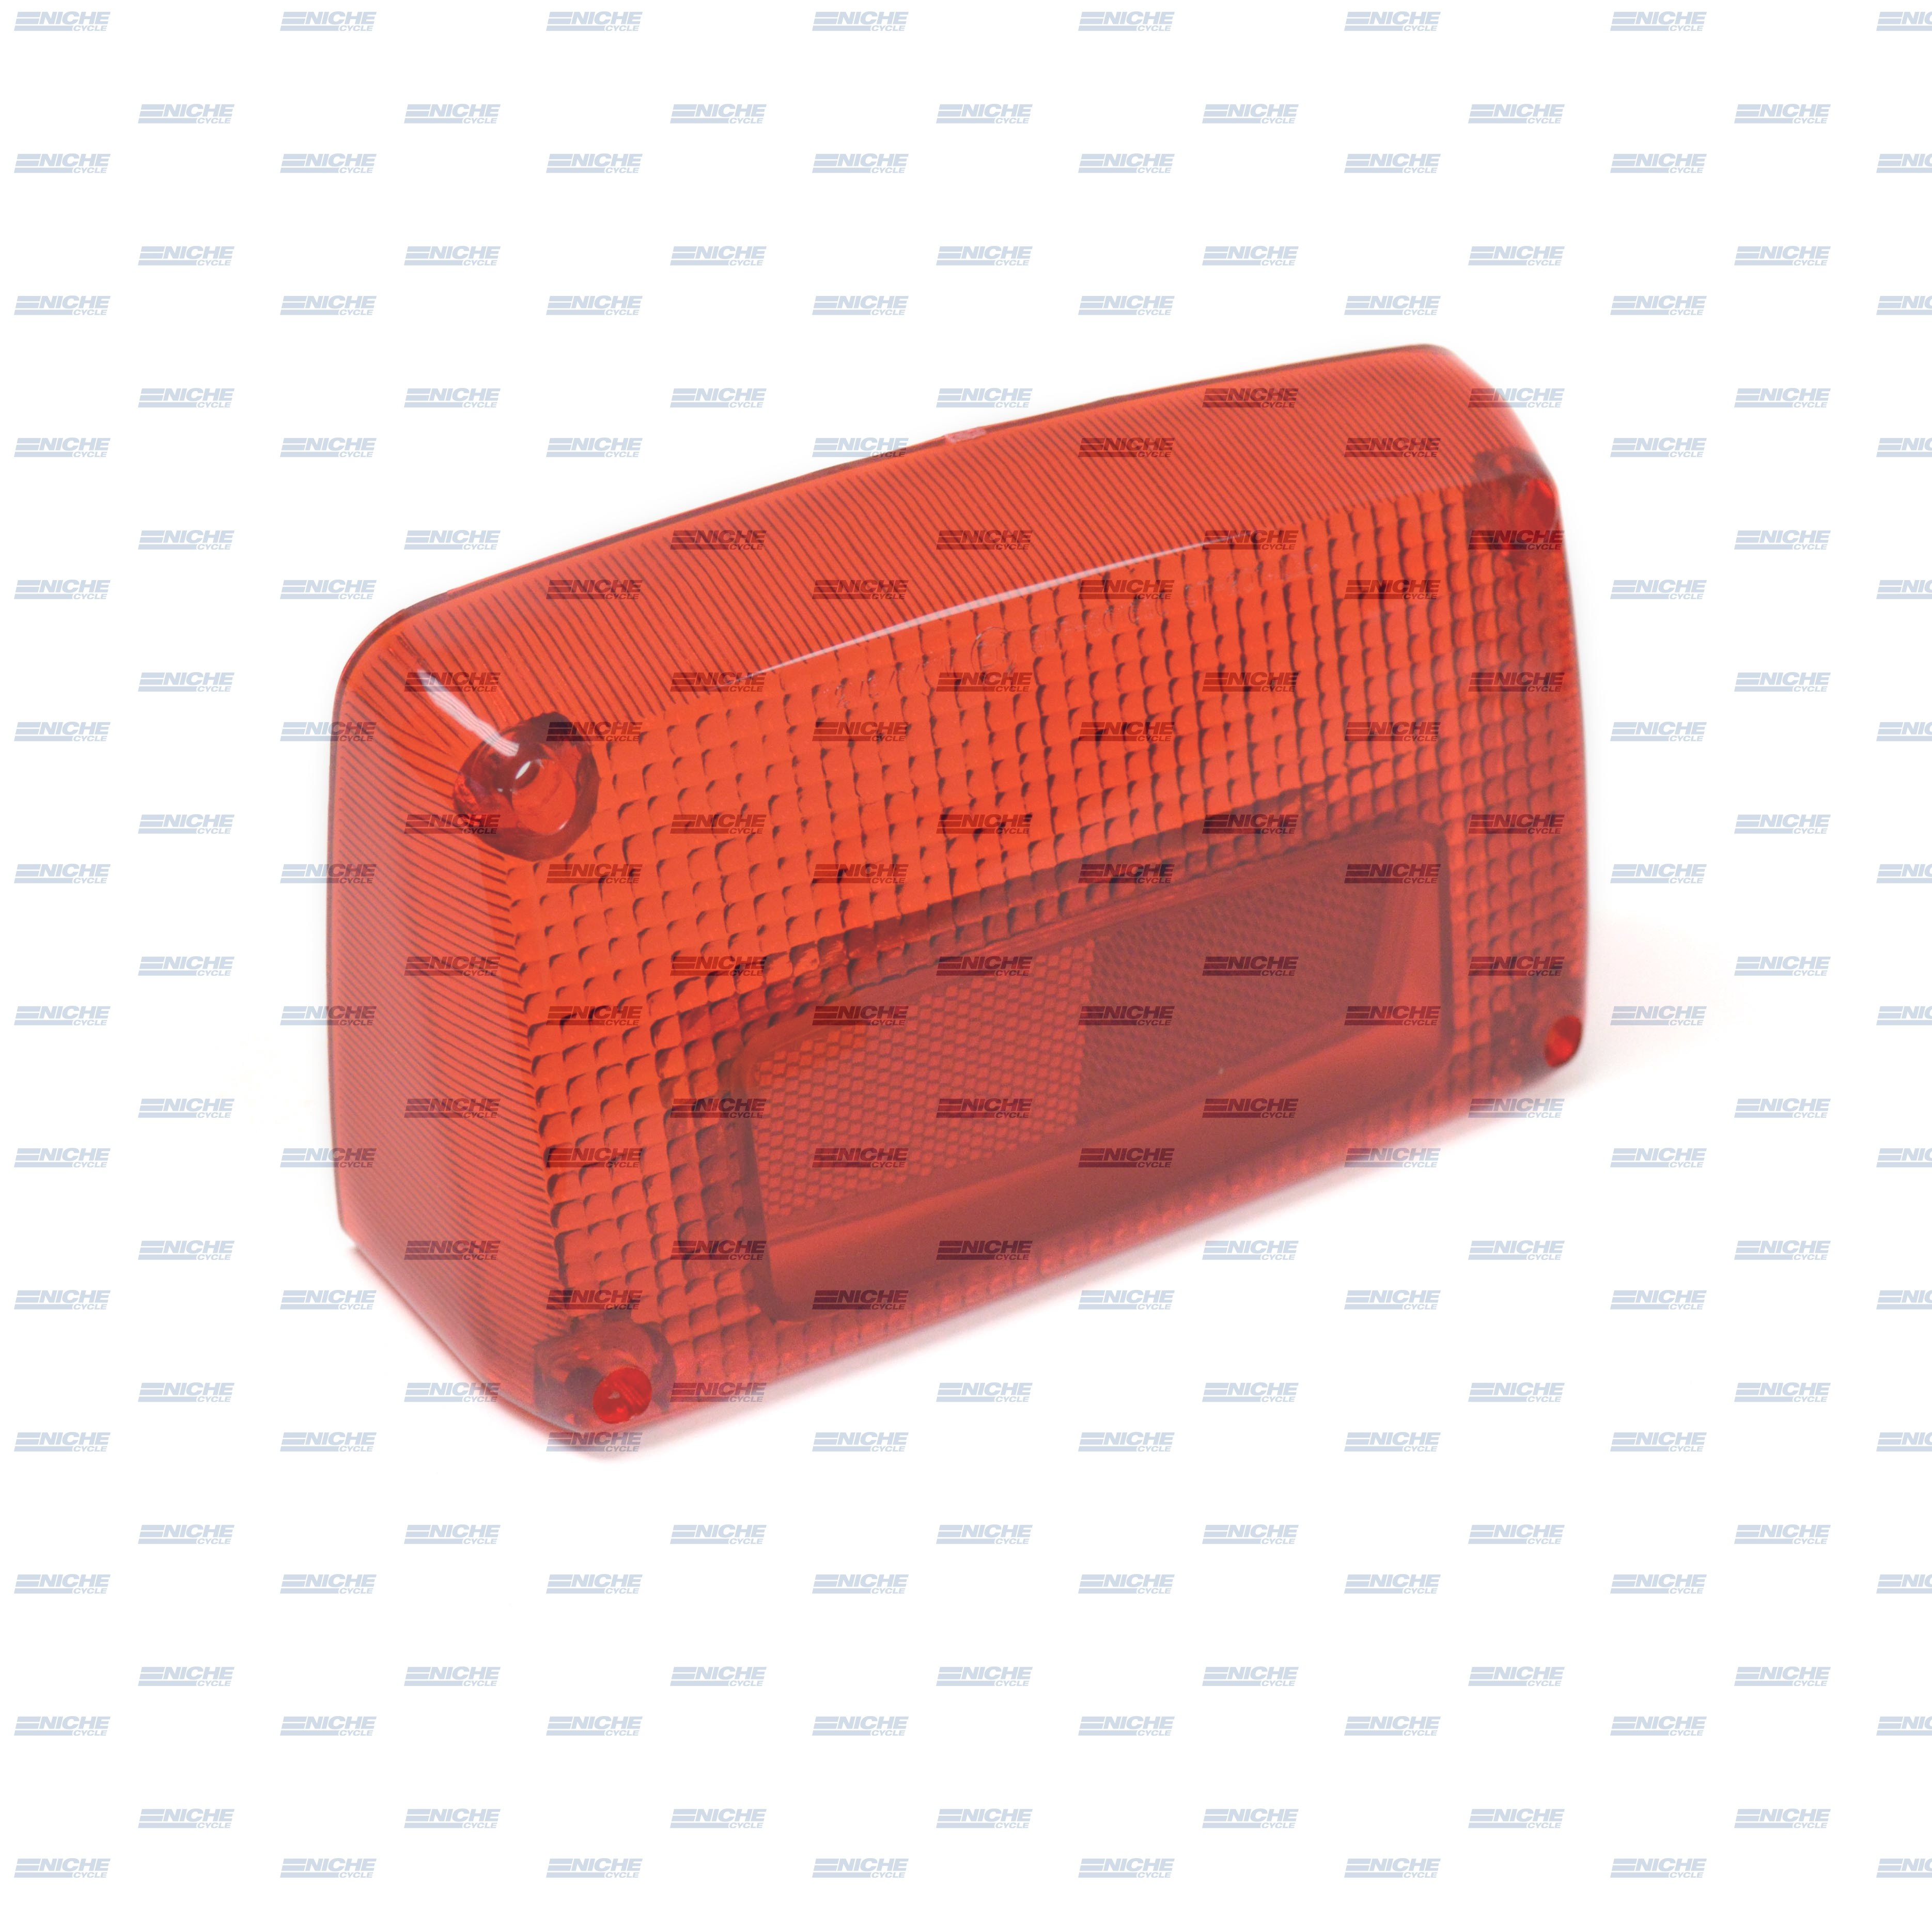 Replica OEM Suzuki Brake Light Lens 62-06130